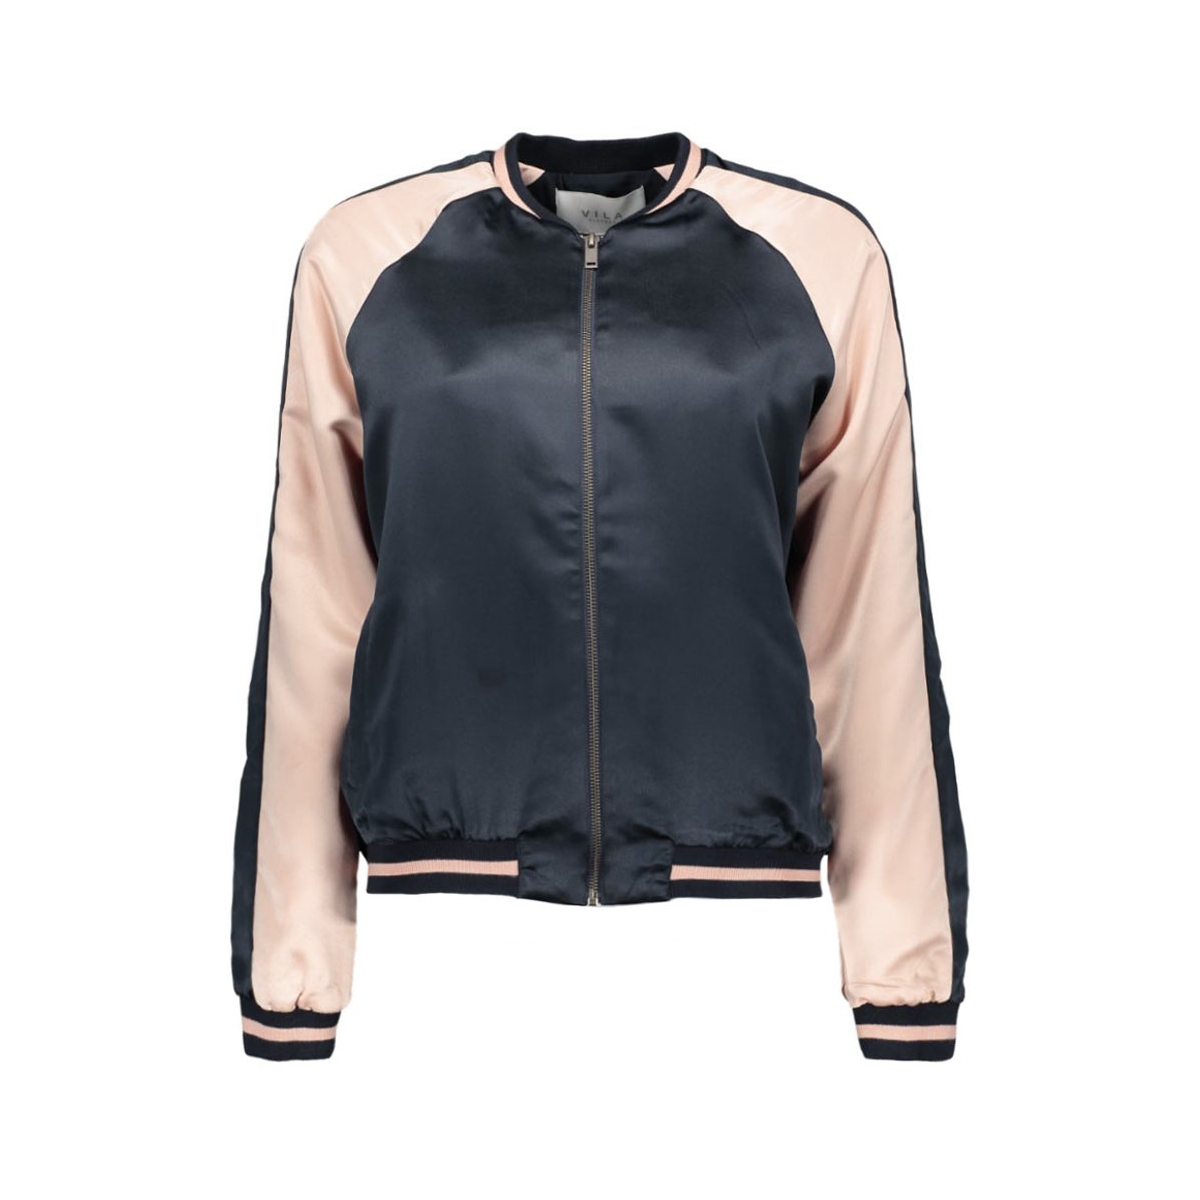 viadobe new bomber jacket 14040198 vila jas total eclipse/rose dust